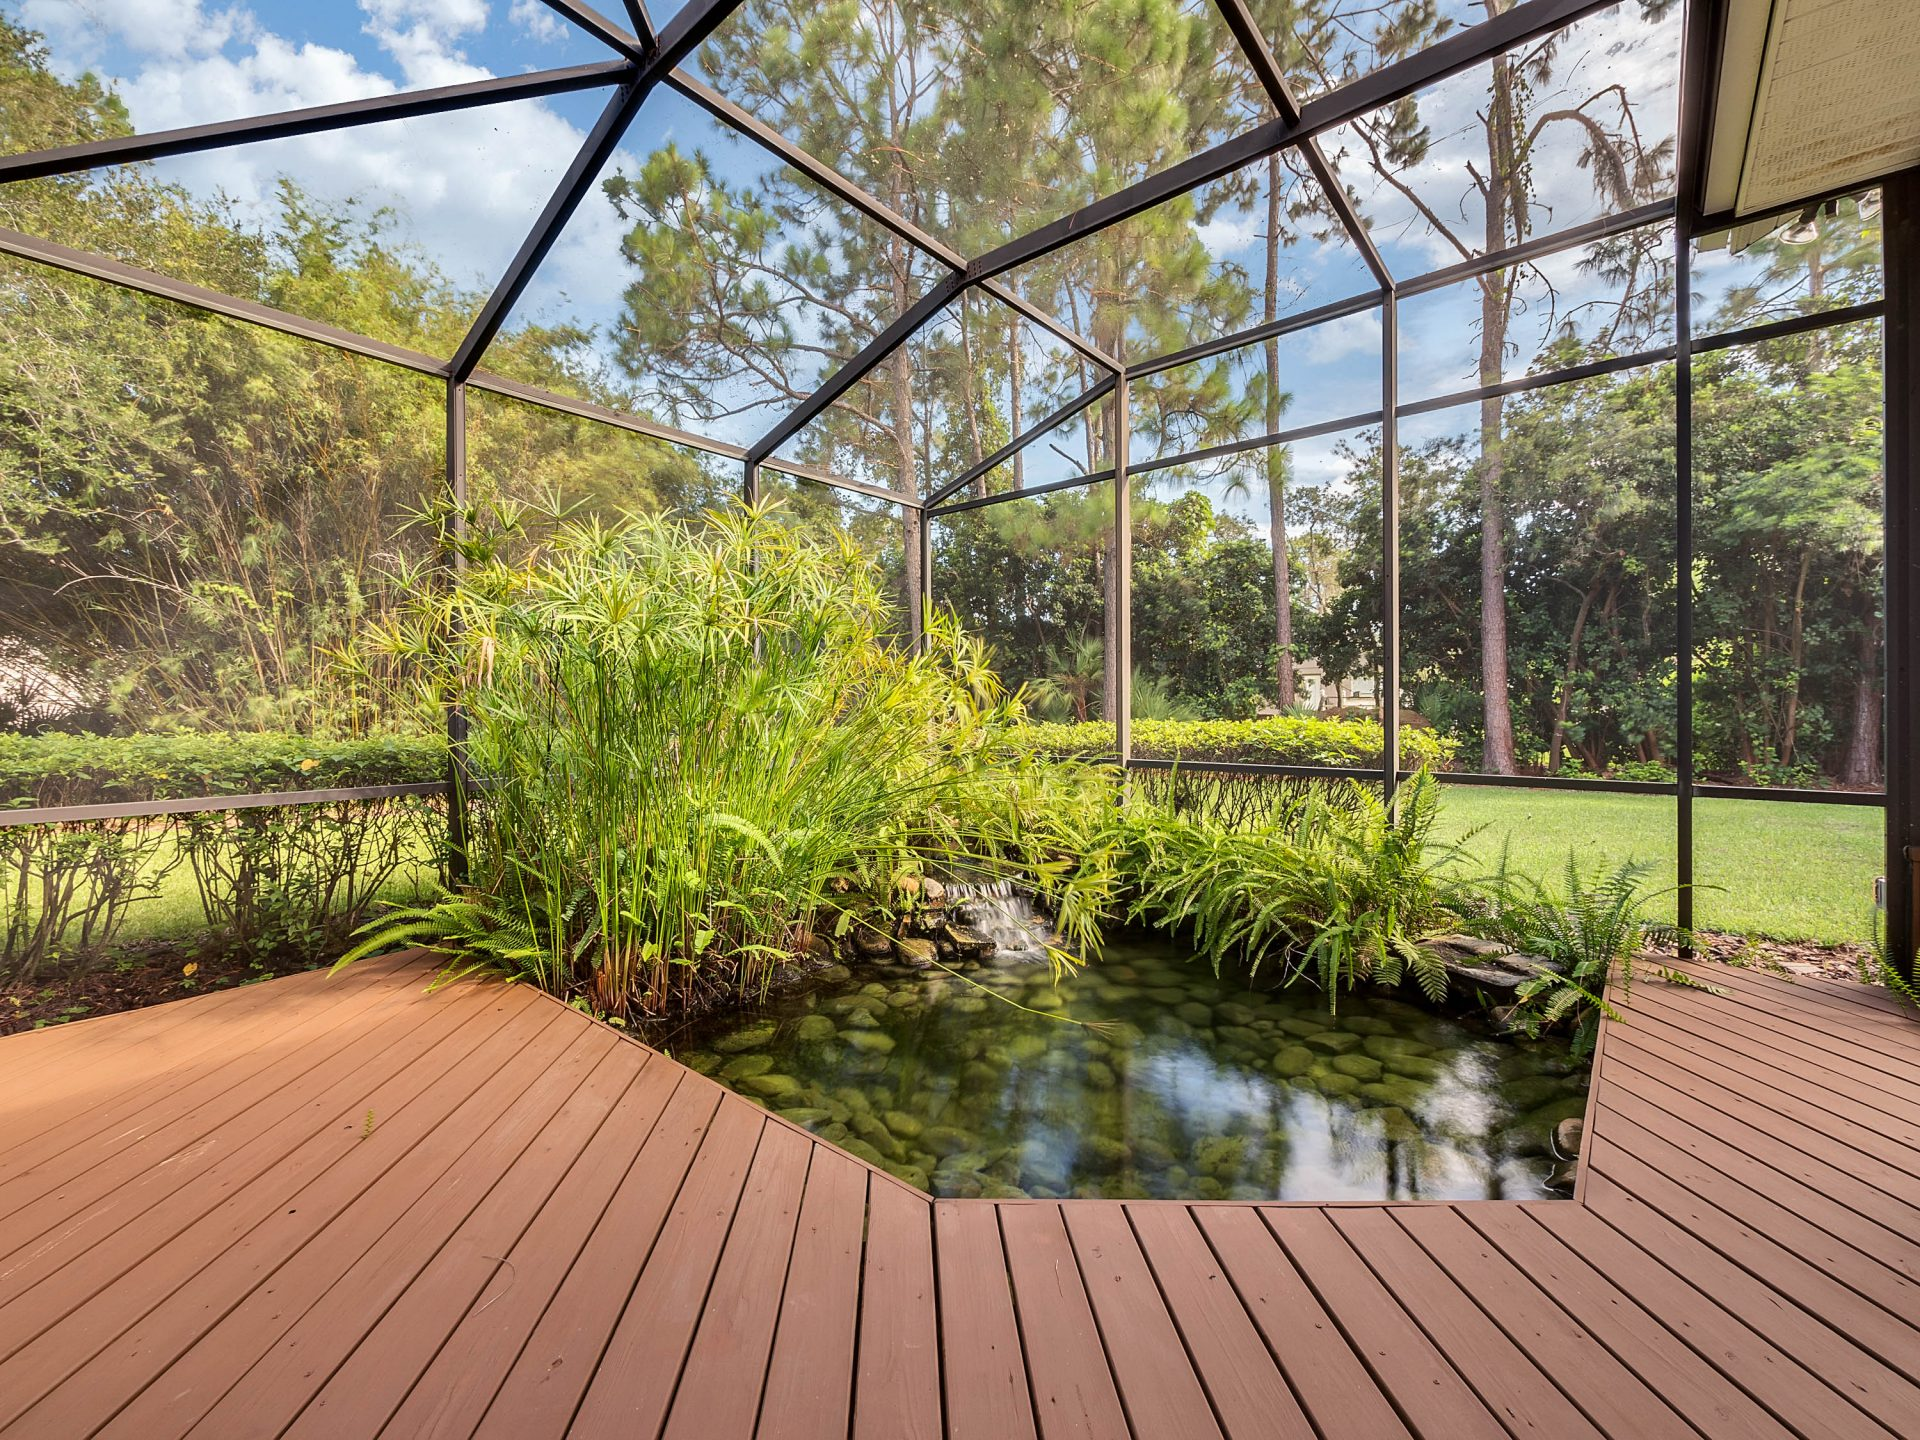 Updated Home For Sale Complete With A Koi Fish Pond